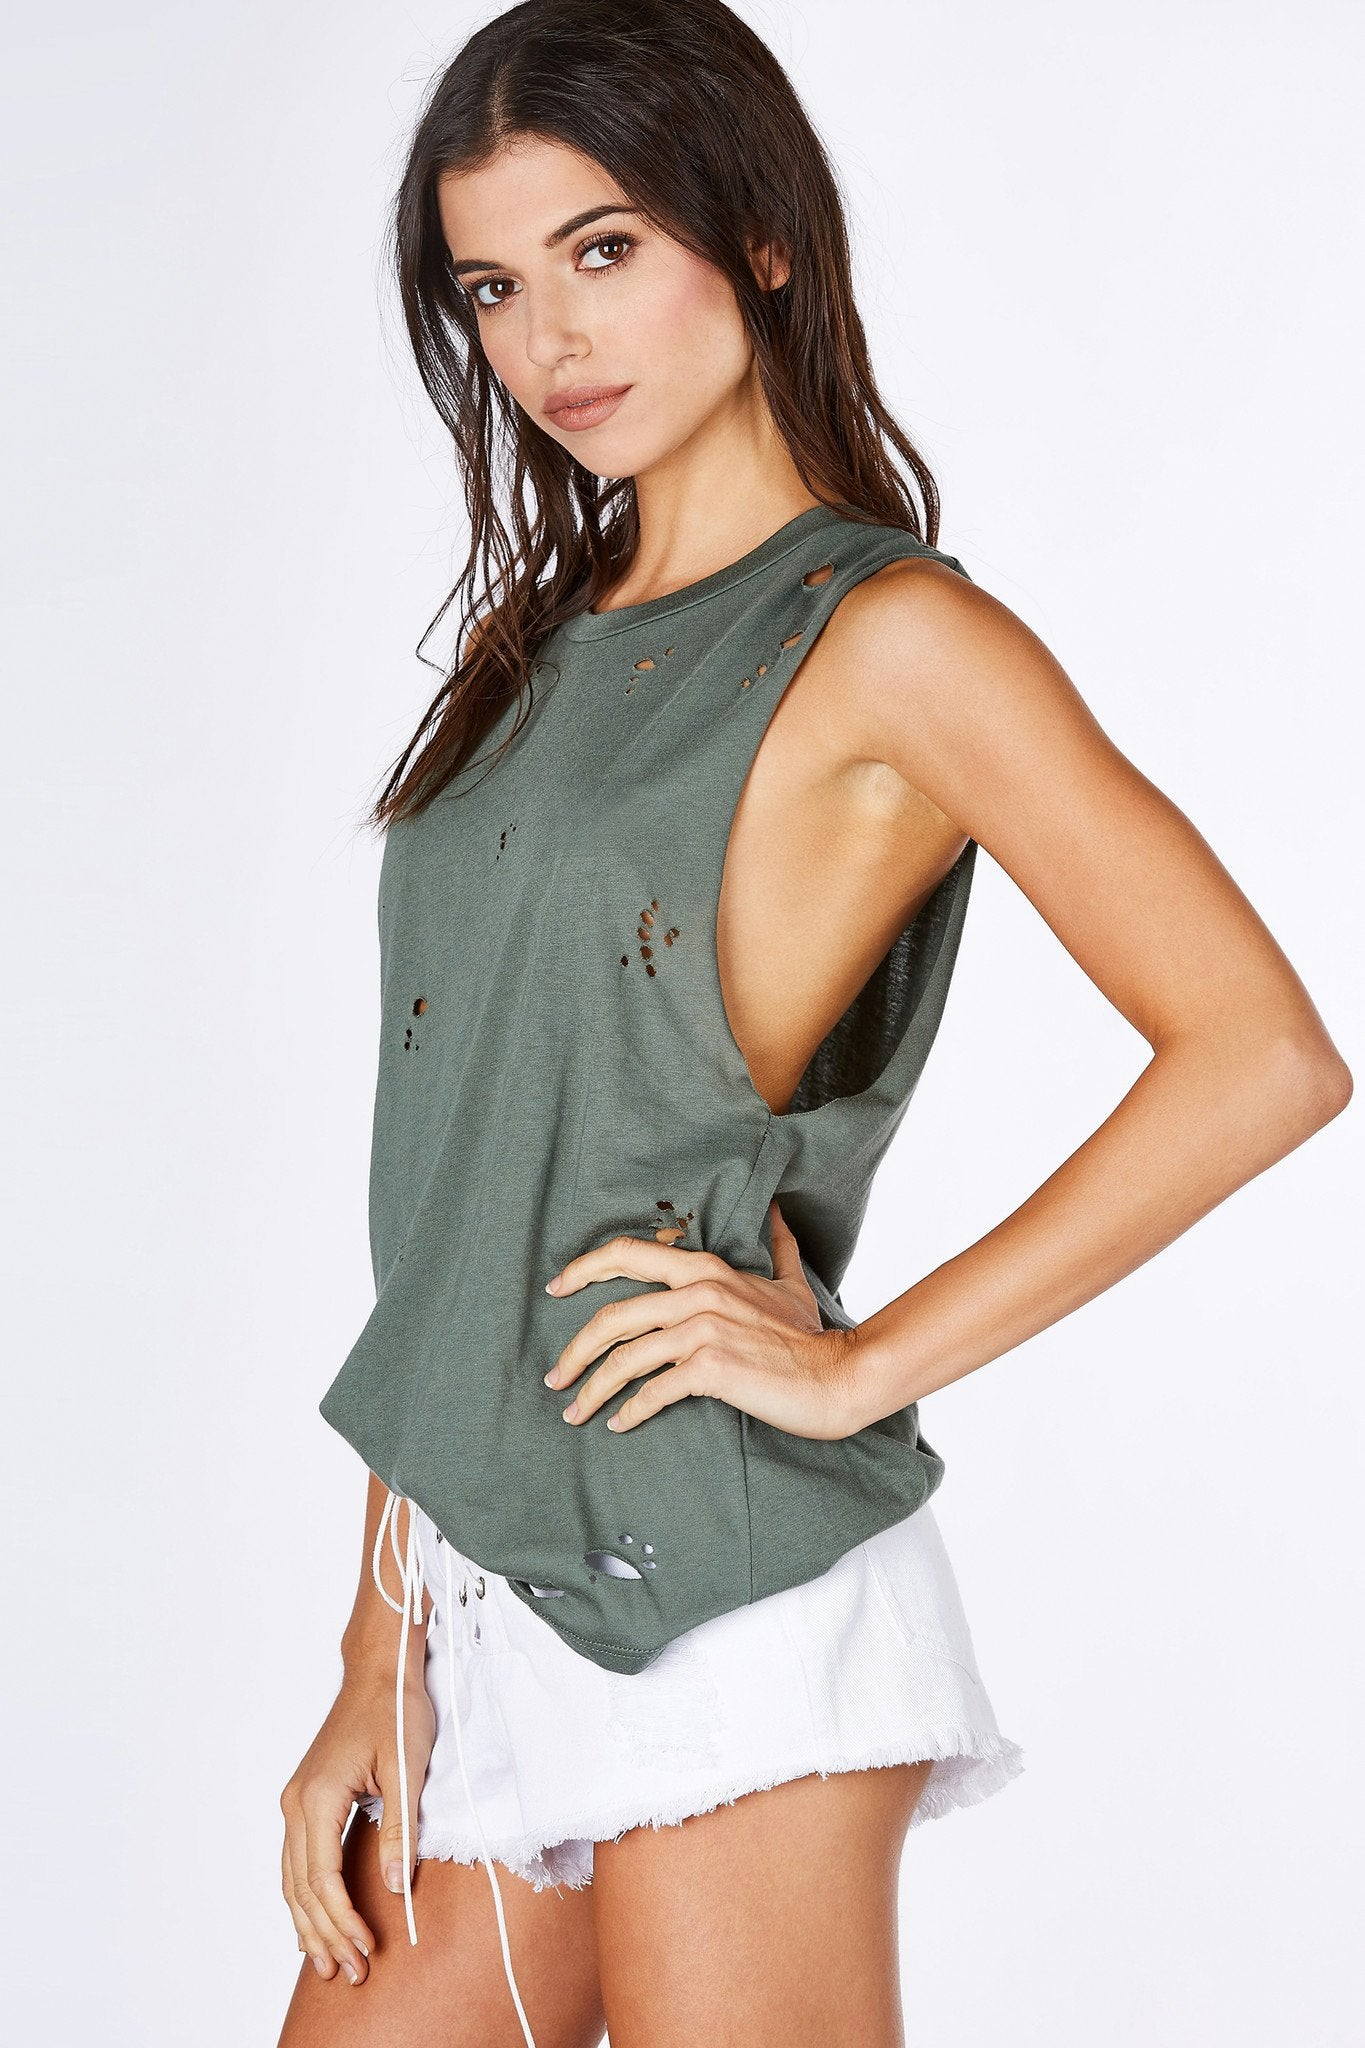 A basic muscle tank is everyone's necessity for the heat. This awesome top features dope distressing throughout the front, perfect for a steezy street style outfit! Pair with a sports bra and denim cut offs for a relaxed but trendy outfit.